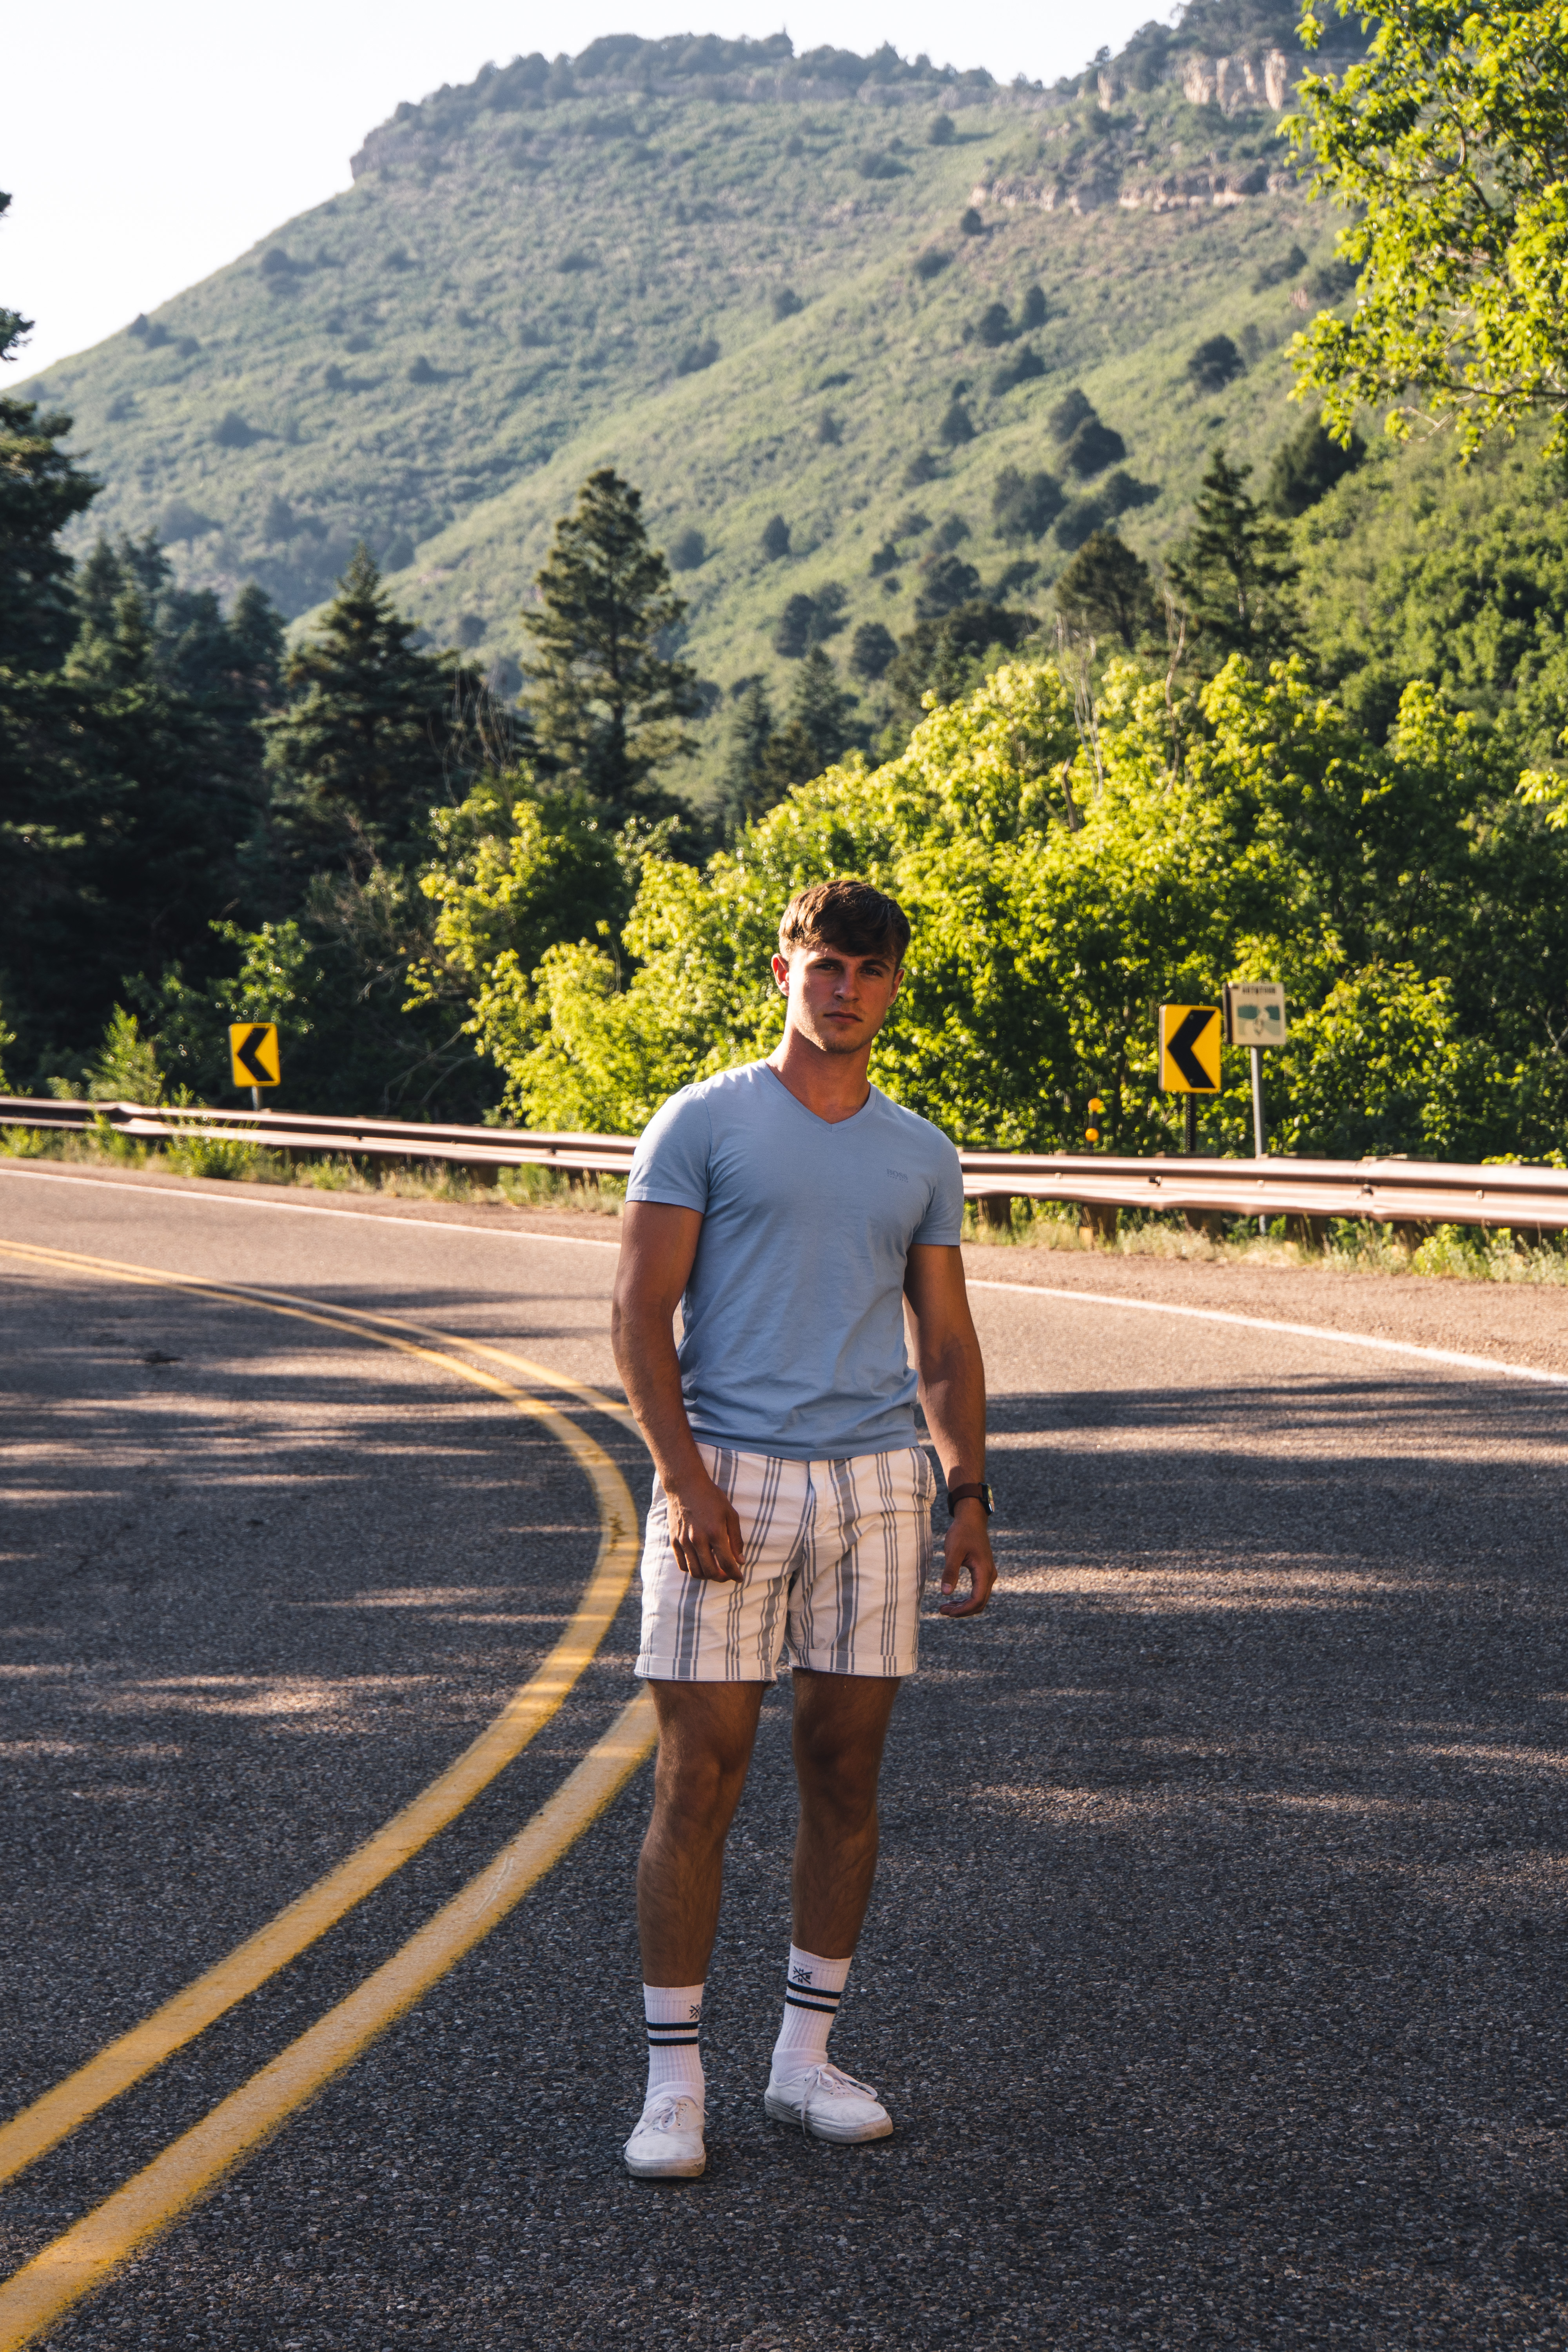 man in white tank top standing on road during daytime